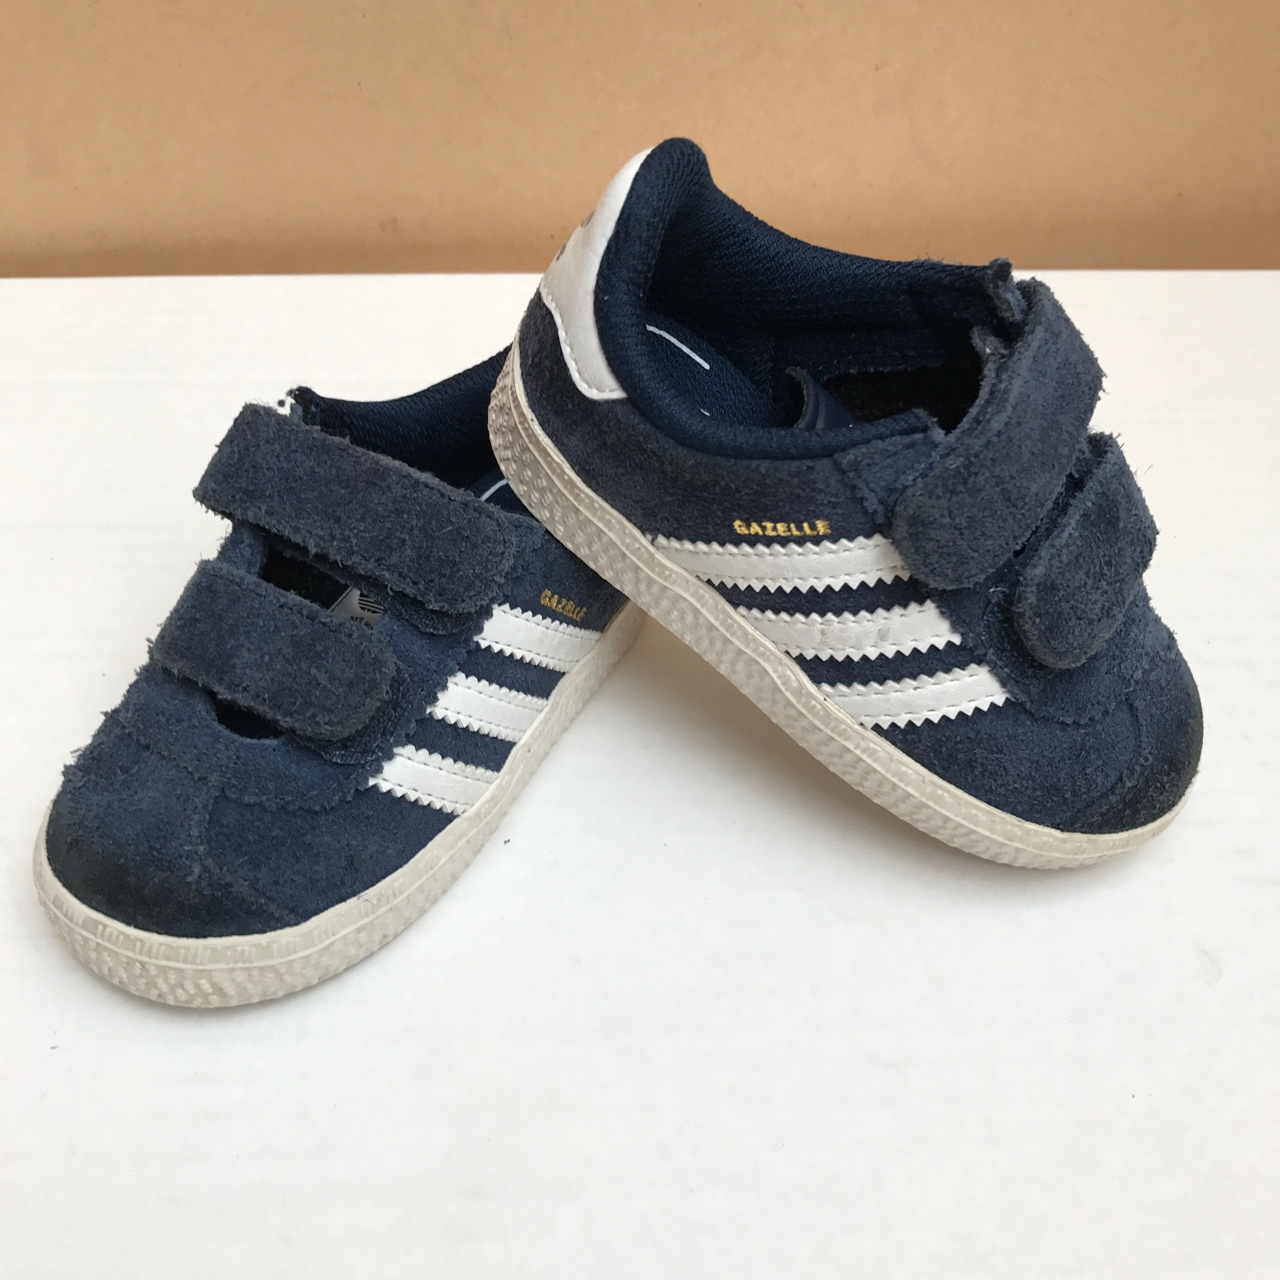 Toddler kids Adidas trainers gazelle navy suede...